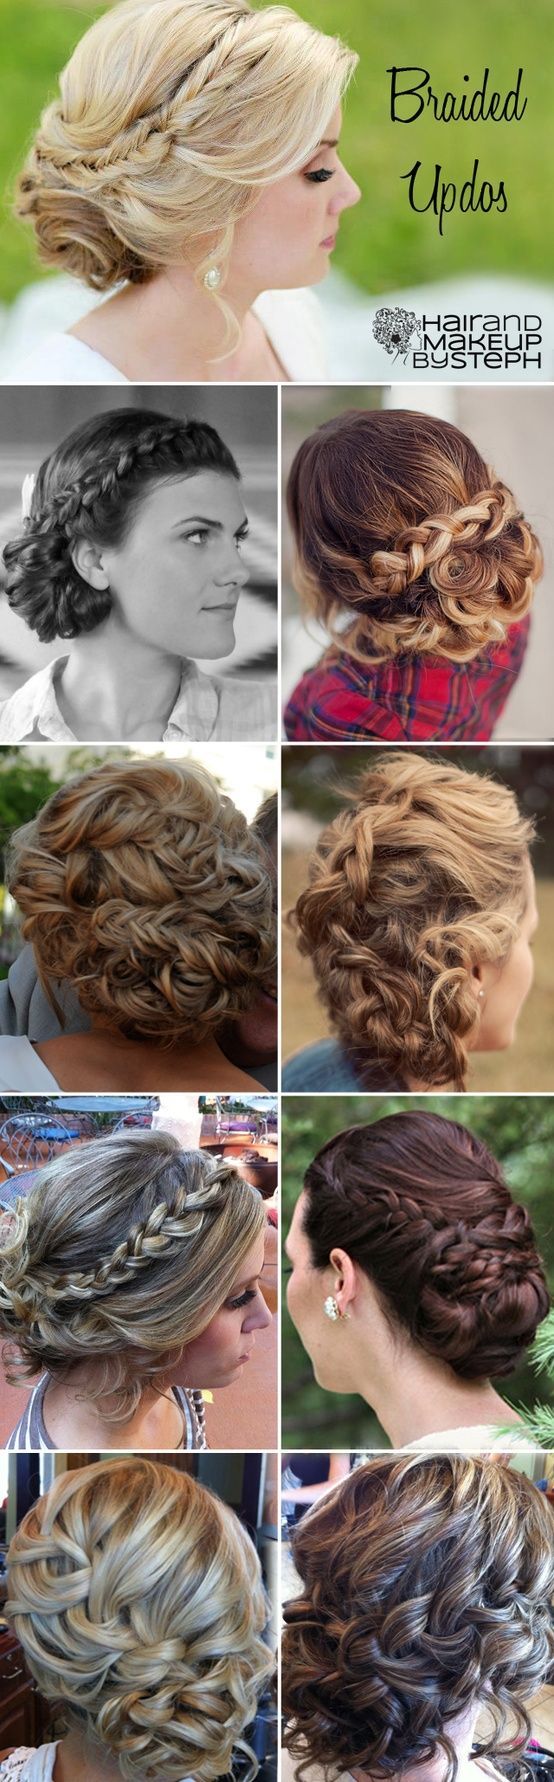 Bridal up do's. Gorgeous. I would so something like this for the rehearsal dinner.